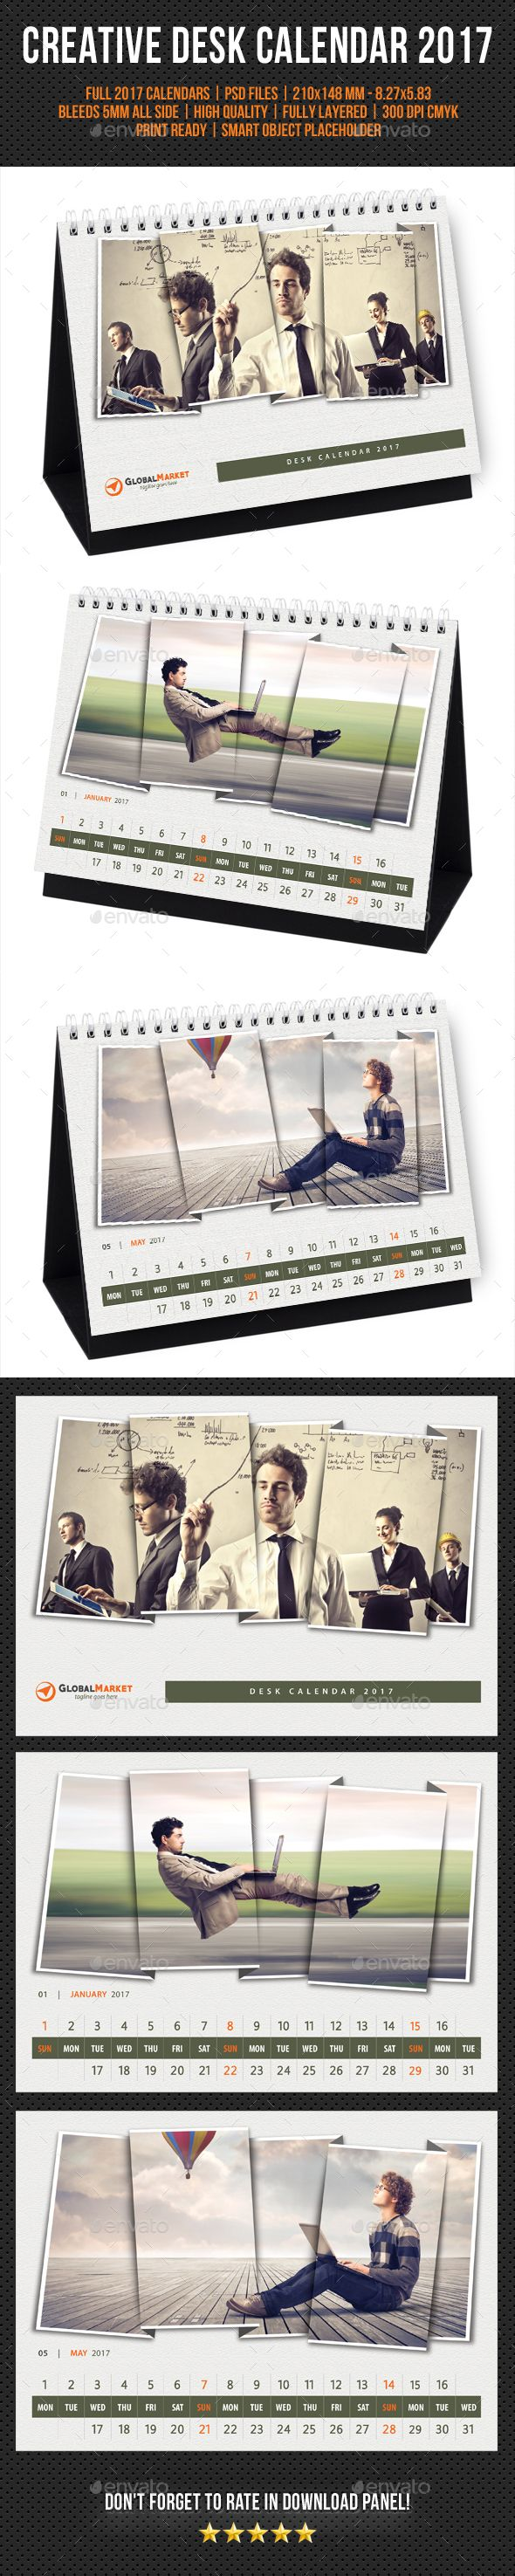 Creative Desk Calendar 2017 V24 - Calendars Stationery